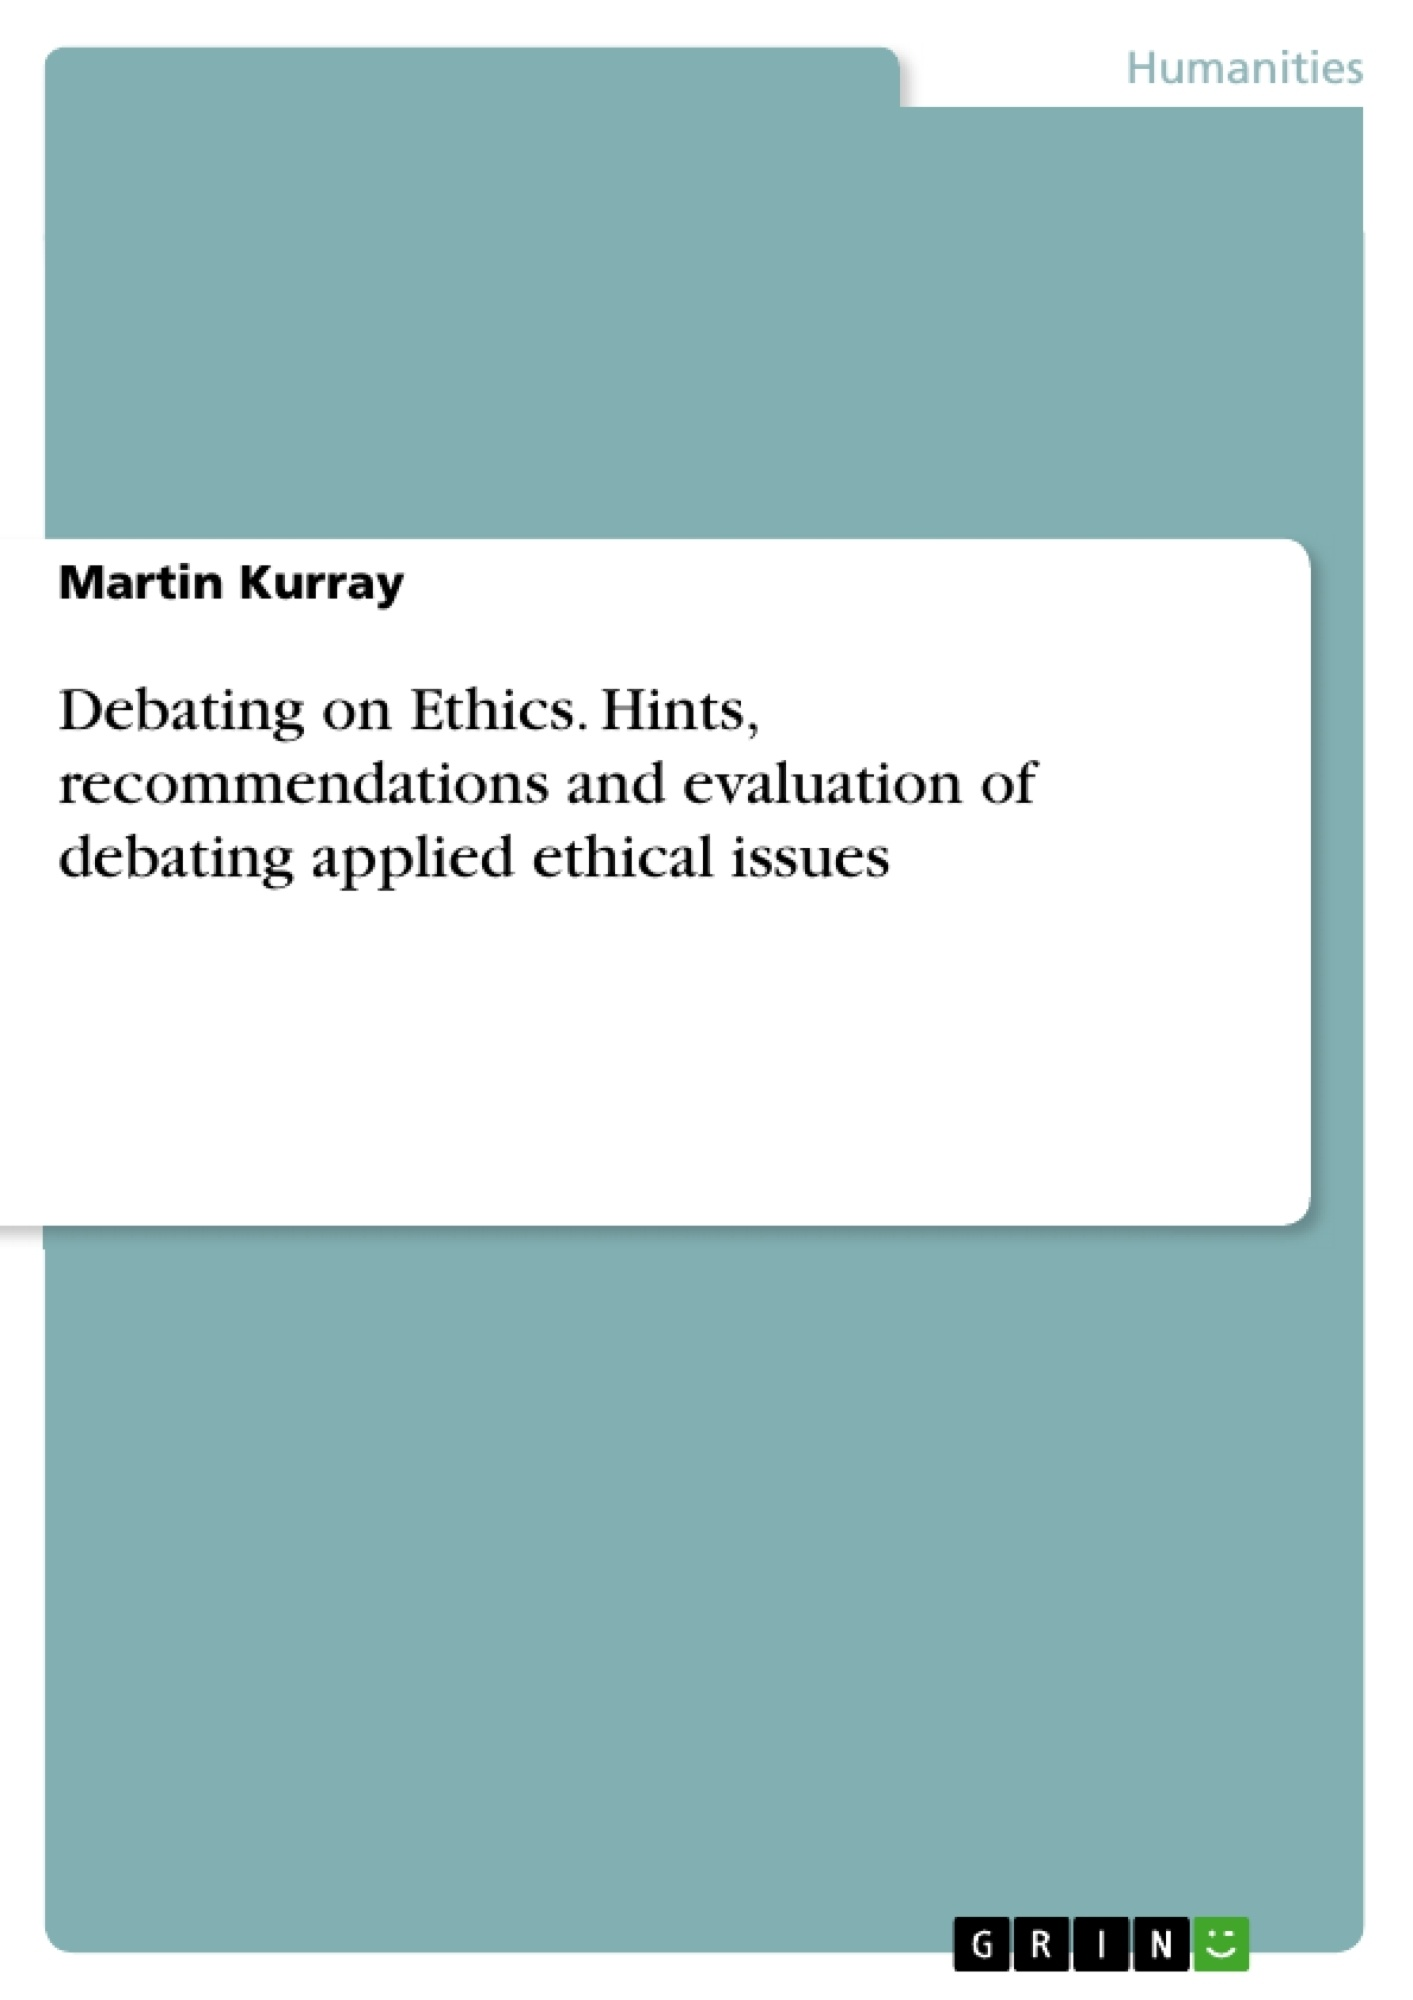 Title: Debating on Ethics. Hints, recommendations and evaluation  of debating applied ethical issues